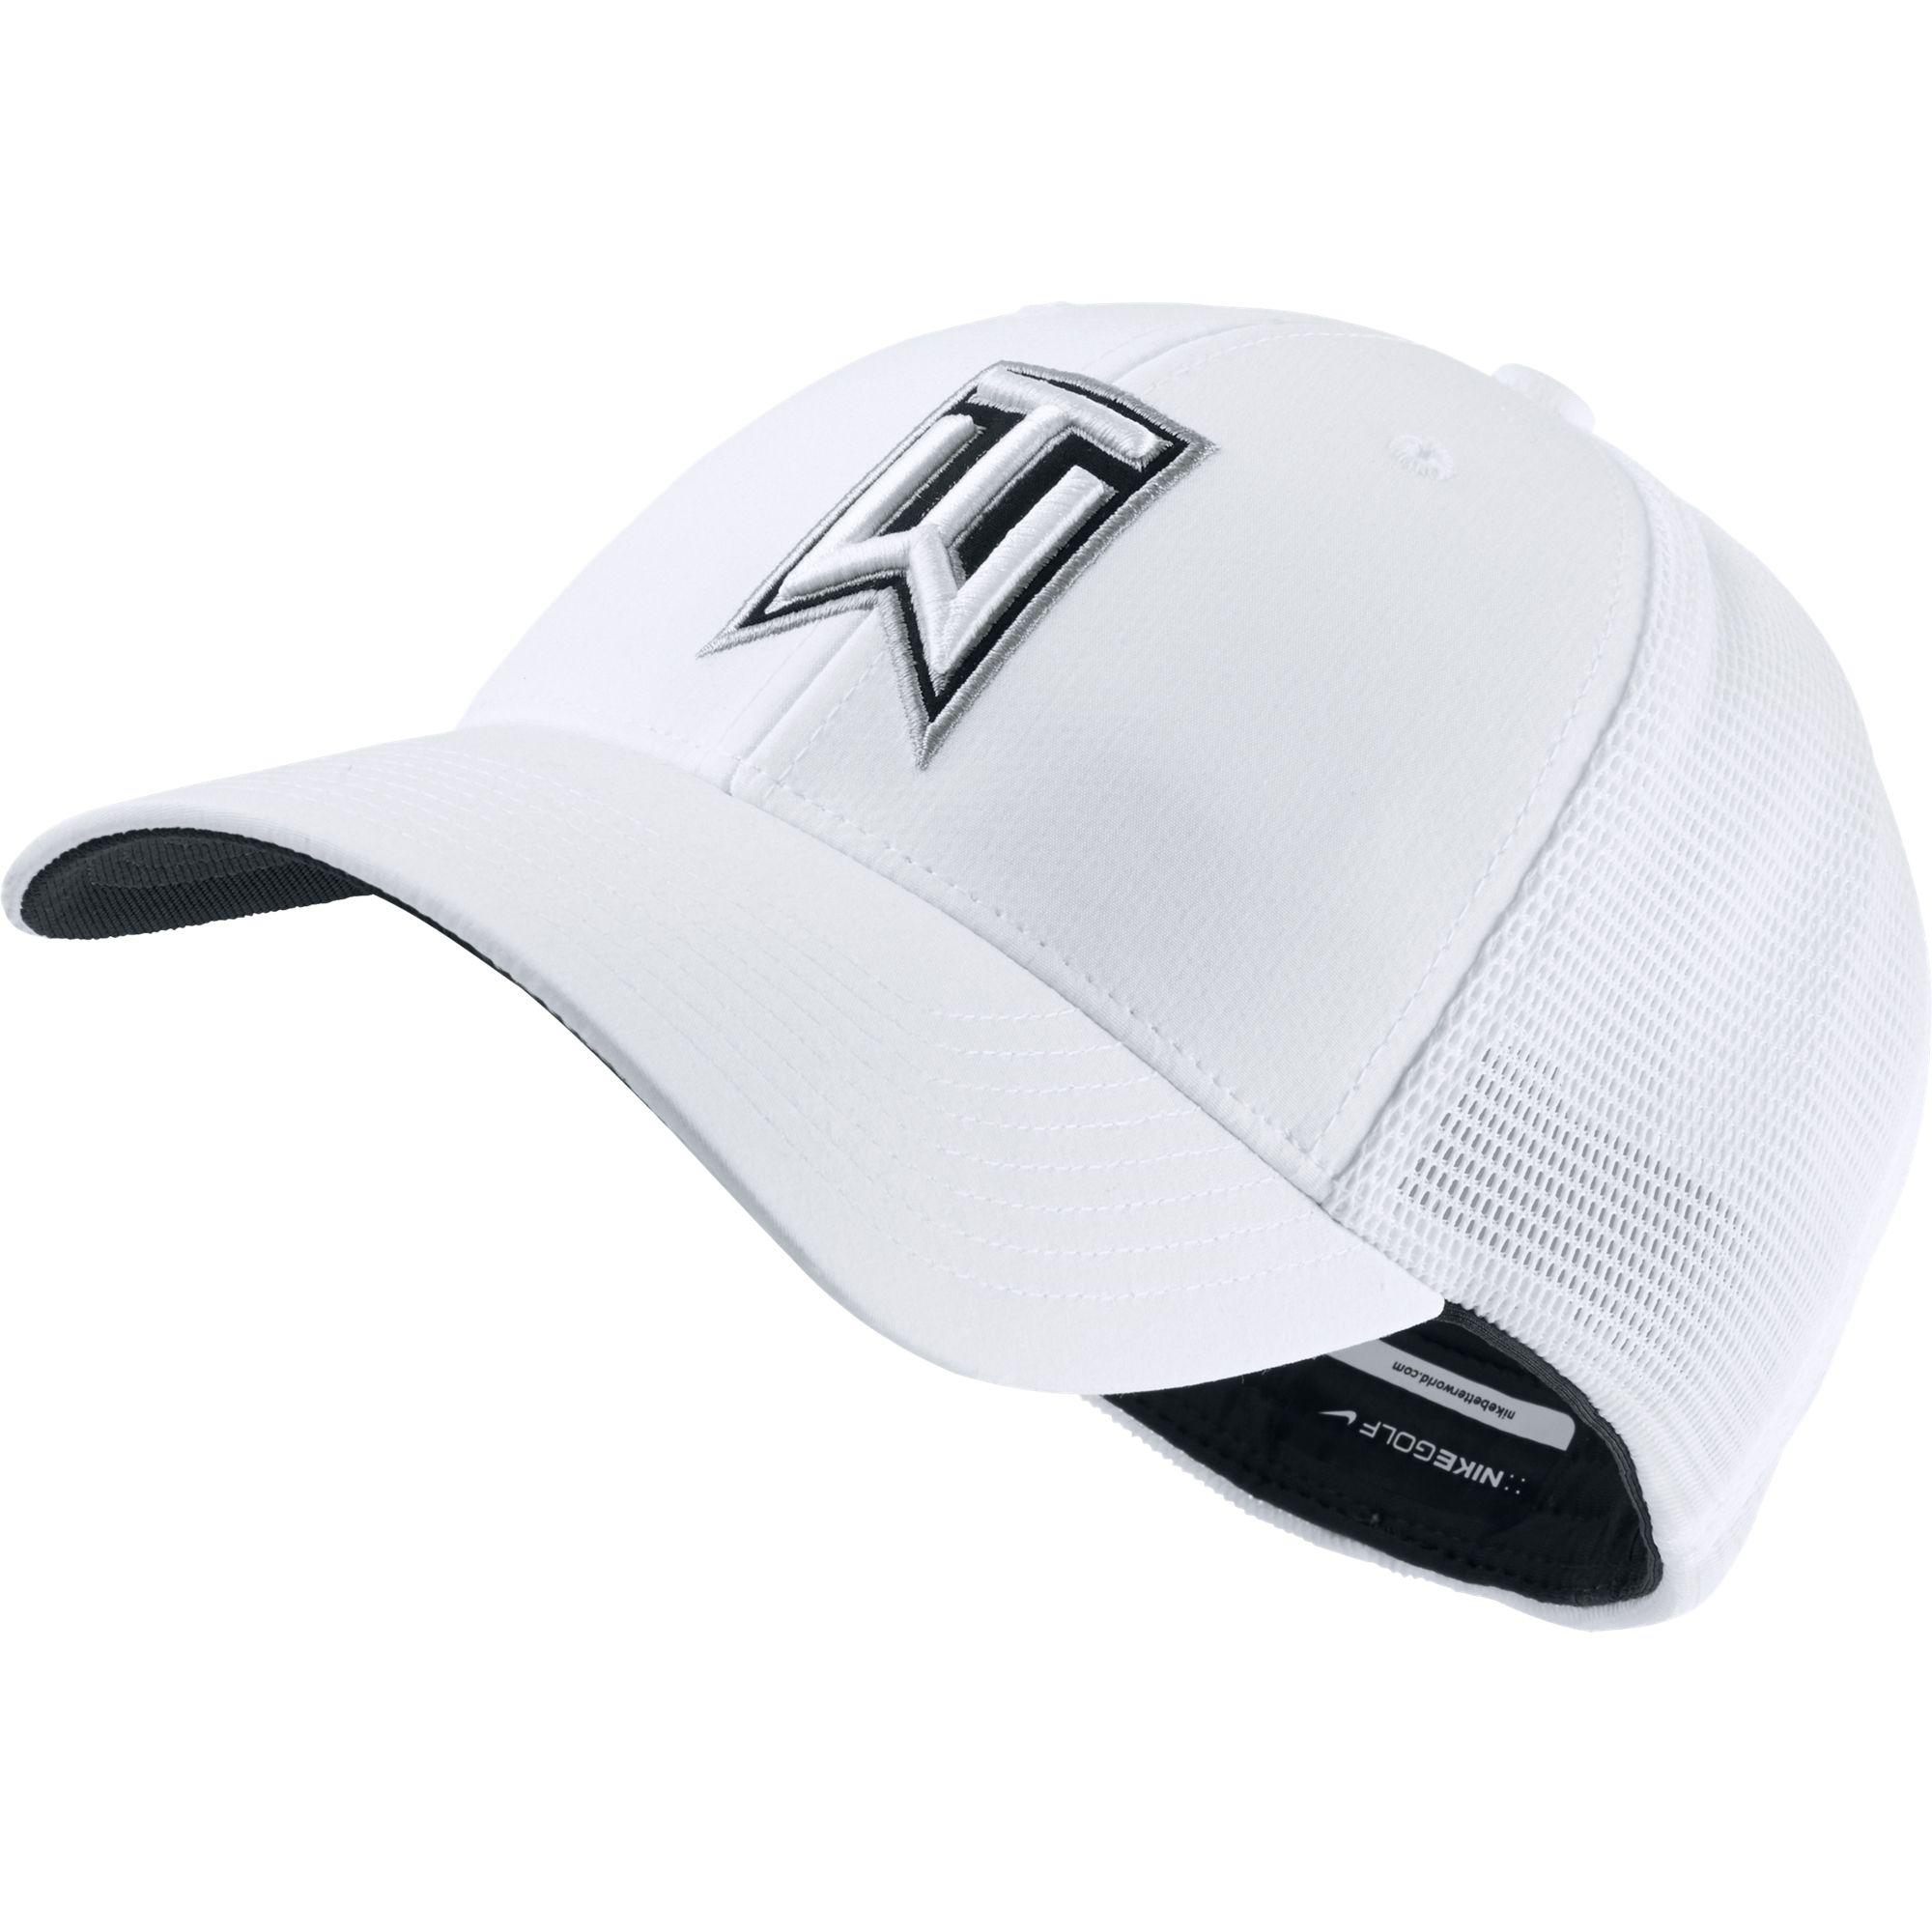 fbd1fa065fb62 Nike Tiger Woods Legacy91 Tour Mesh Golf Hat in White for Men - Lyst